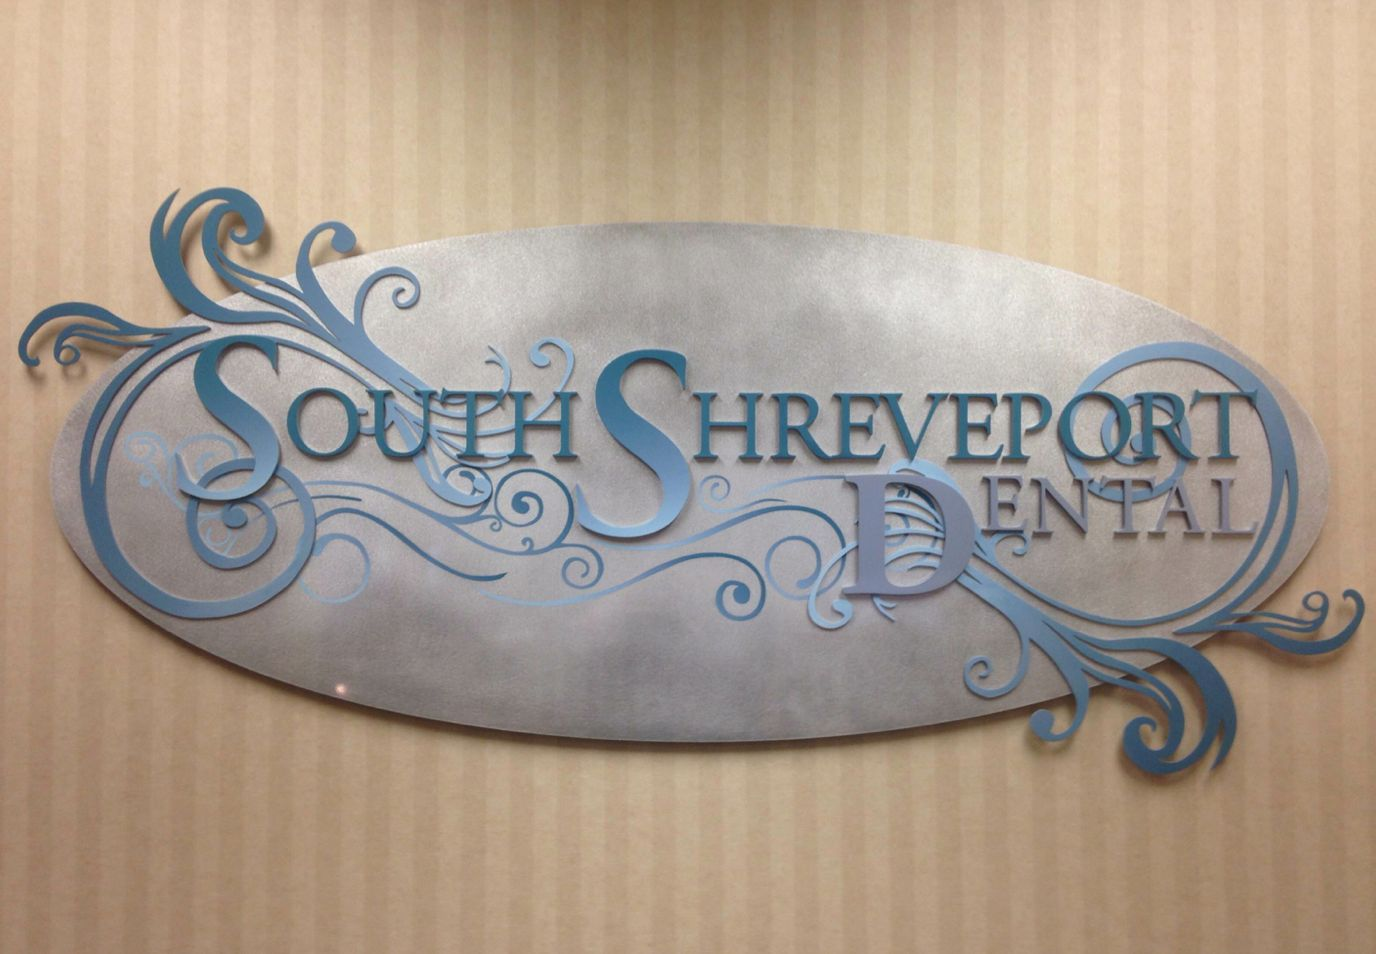 Custom metal art fabrication decor sculptures monuments signs - Custom signs for home decor concept ...